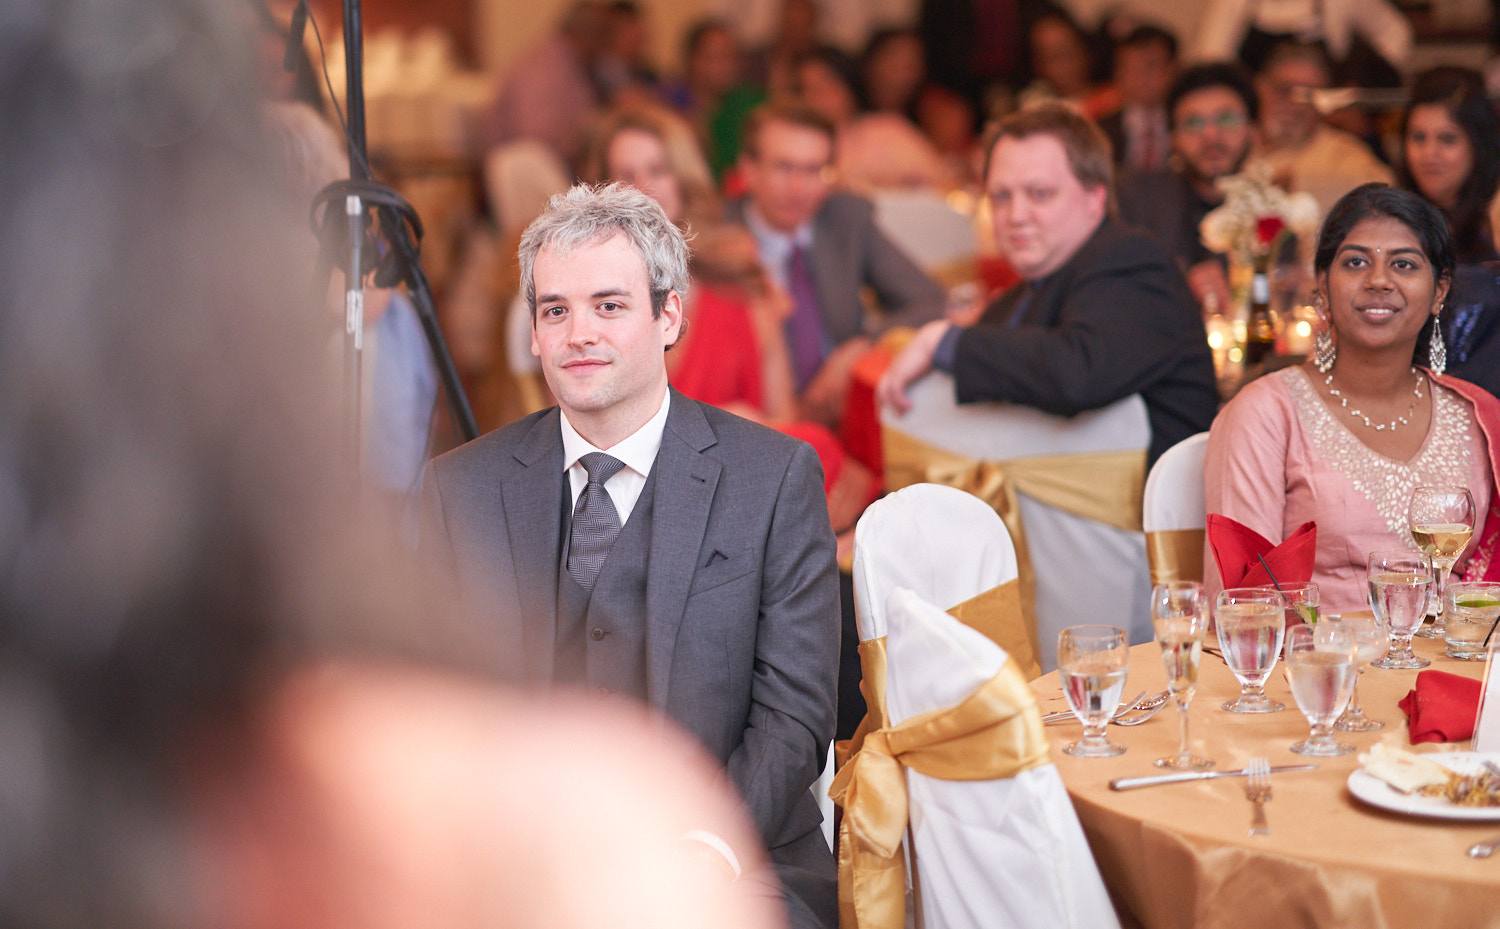 saratoga-country-club-wedding-reception-photography-by-afewgoodclicks-at 77.jpg